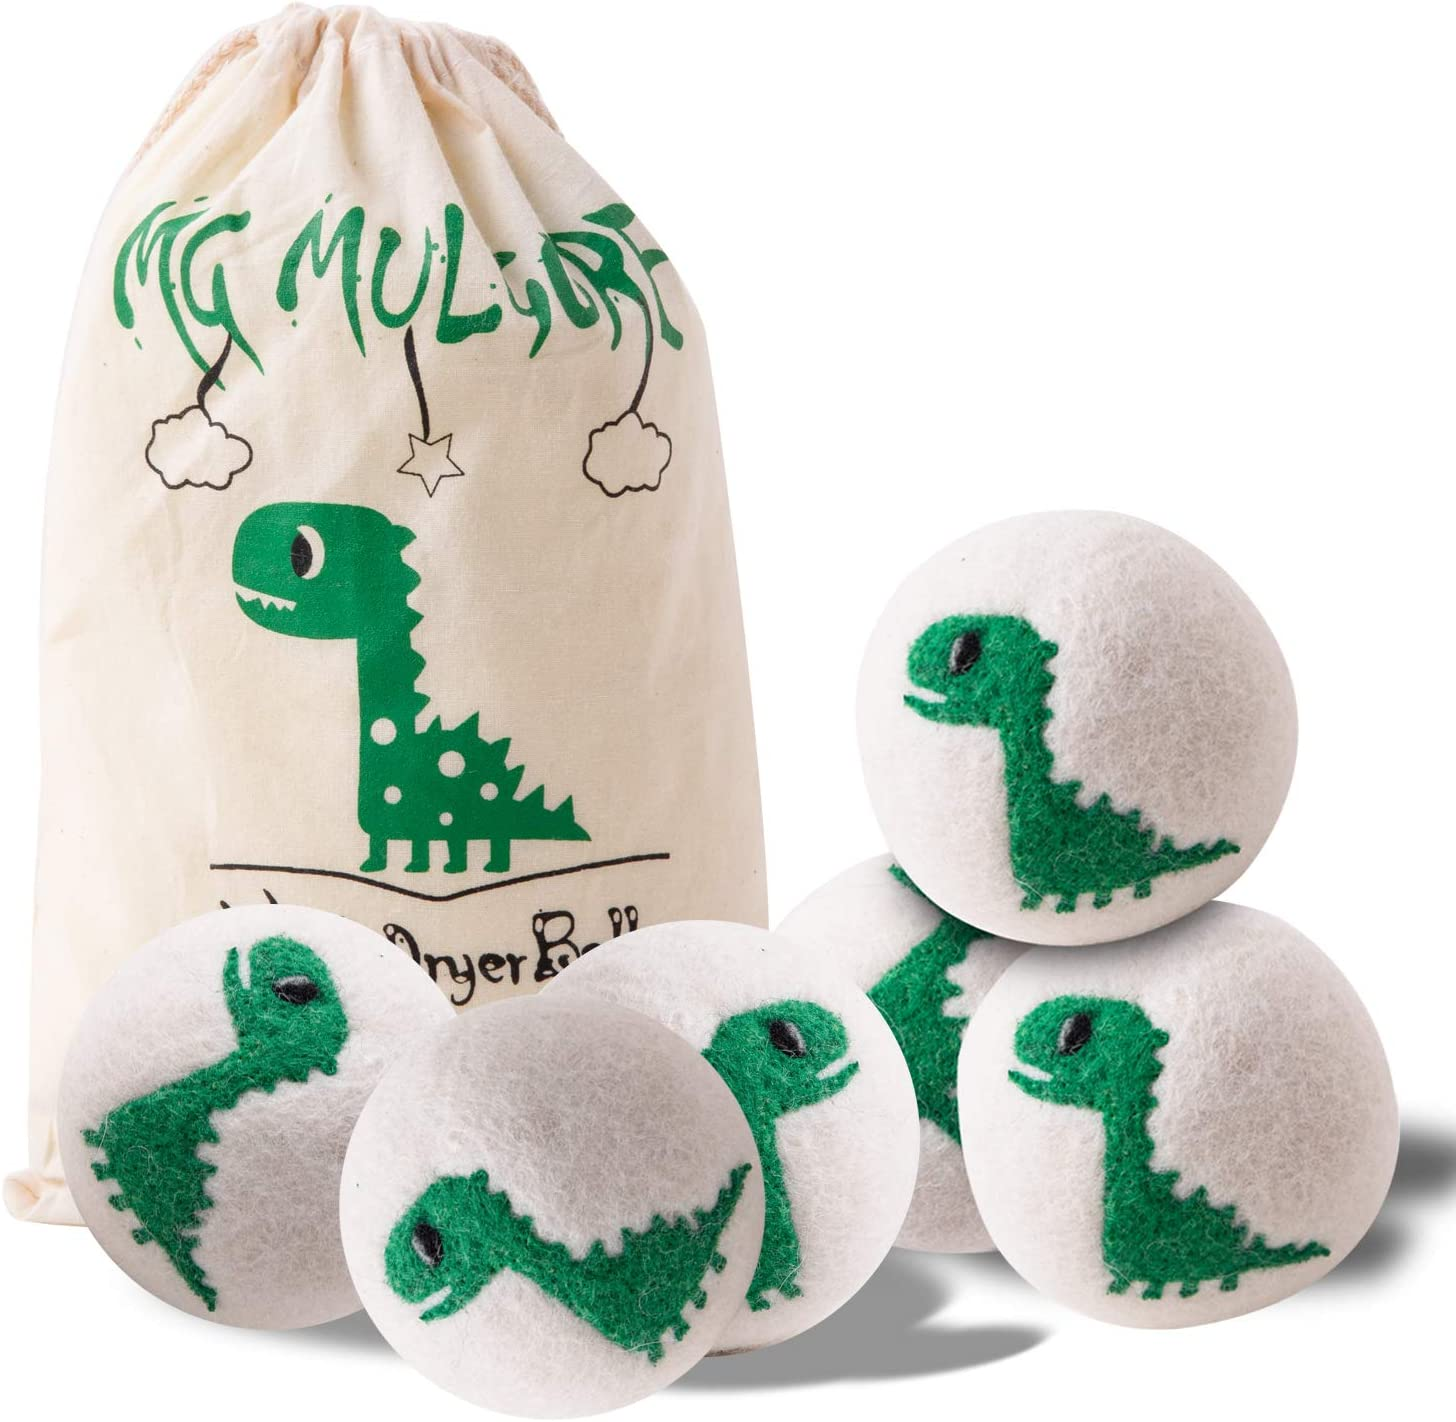 Wool Dryer Balls- 2019 New Green Dinosaur, 100% New Zealand Wool, Handmade, No Fading, Reusable Organic Natural Fabric Softener, Baby Safe Non-Chemical Reduce Wrinkles&Static Save Drying Time, 6Pack